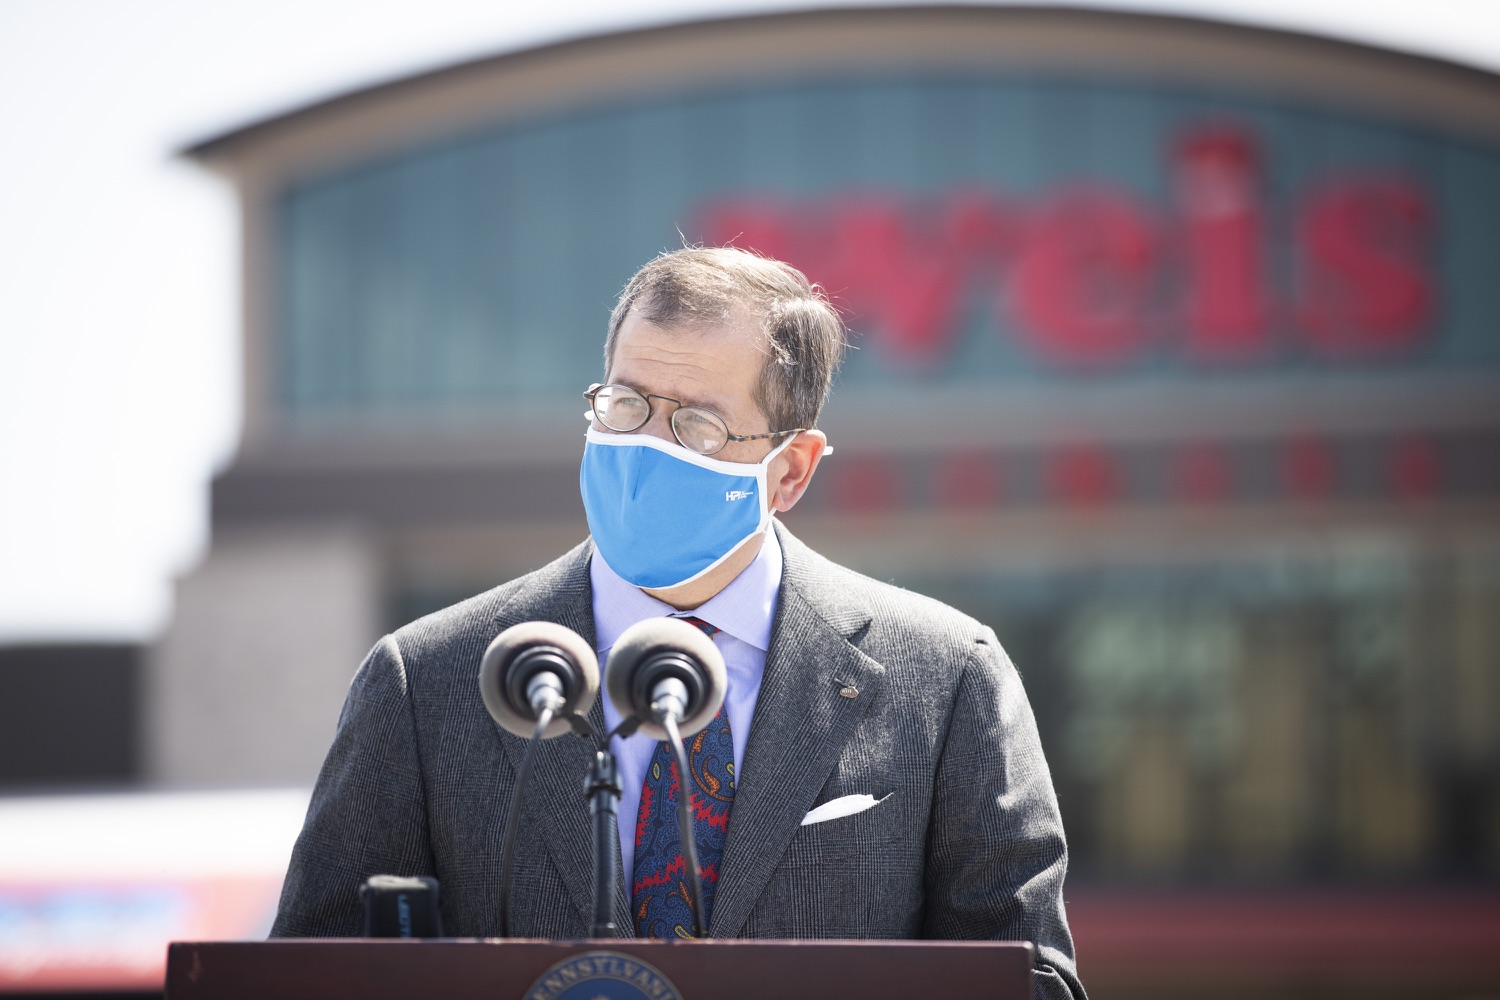 """<a href=""""https://filesource.wostreaming.net/commonwealthofpa/photo/18654_gov_vaccineeligibility_dz_007.jpg"""" target=""""_blank"""">⇣Download Photo<br></a>Jonathan Weis, chairman, president and CEO of Weis speaking to the press.  Gov. Tom Wolf visited Weis Markets in Enola, Cumberland County, to recognize the heroic efforts of Pennsylvania's grocery store workers, who are now eligible for the COVID-19 vaccine.  The governor expressed his gratitude to Pennsylvania's 180,000 grocery store workers, who suddenly became frontline workers as the state took critical steps to mitigate the spread of COVID-19. Grocery stores were deemed life-sustaining businesses, and these employees put their lives at risk to ensure their stores remained open to the public. APRIL 06, 2021 - ENOLA, PA.."""